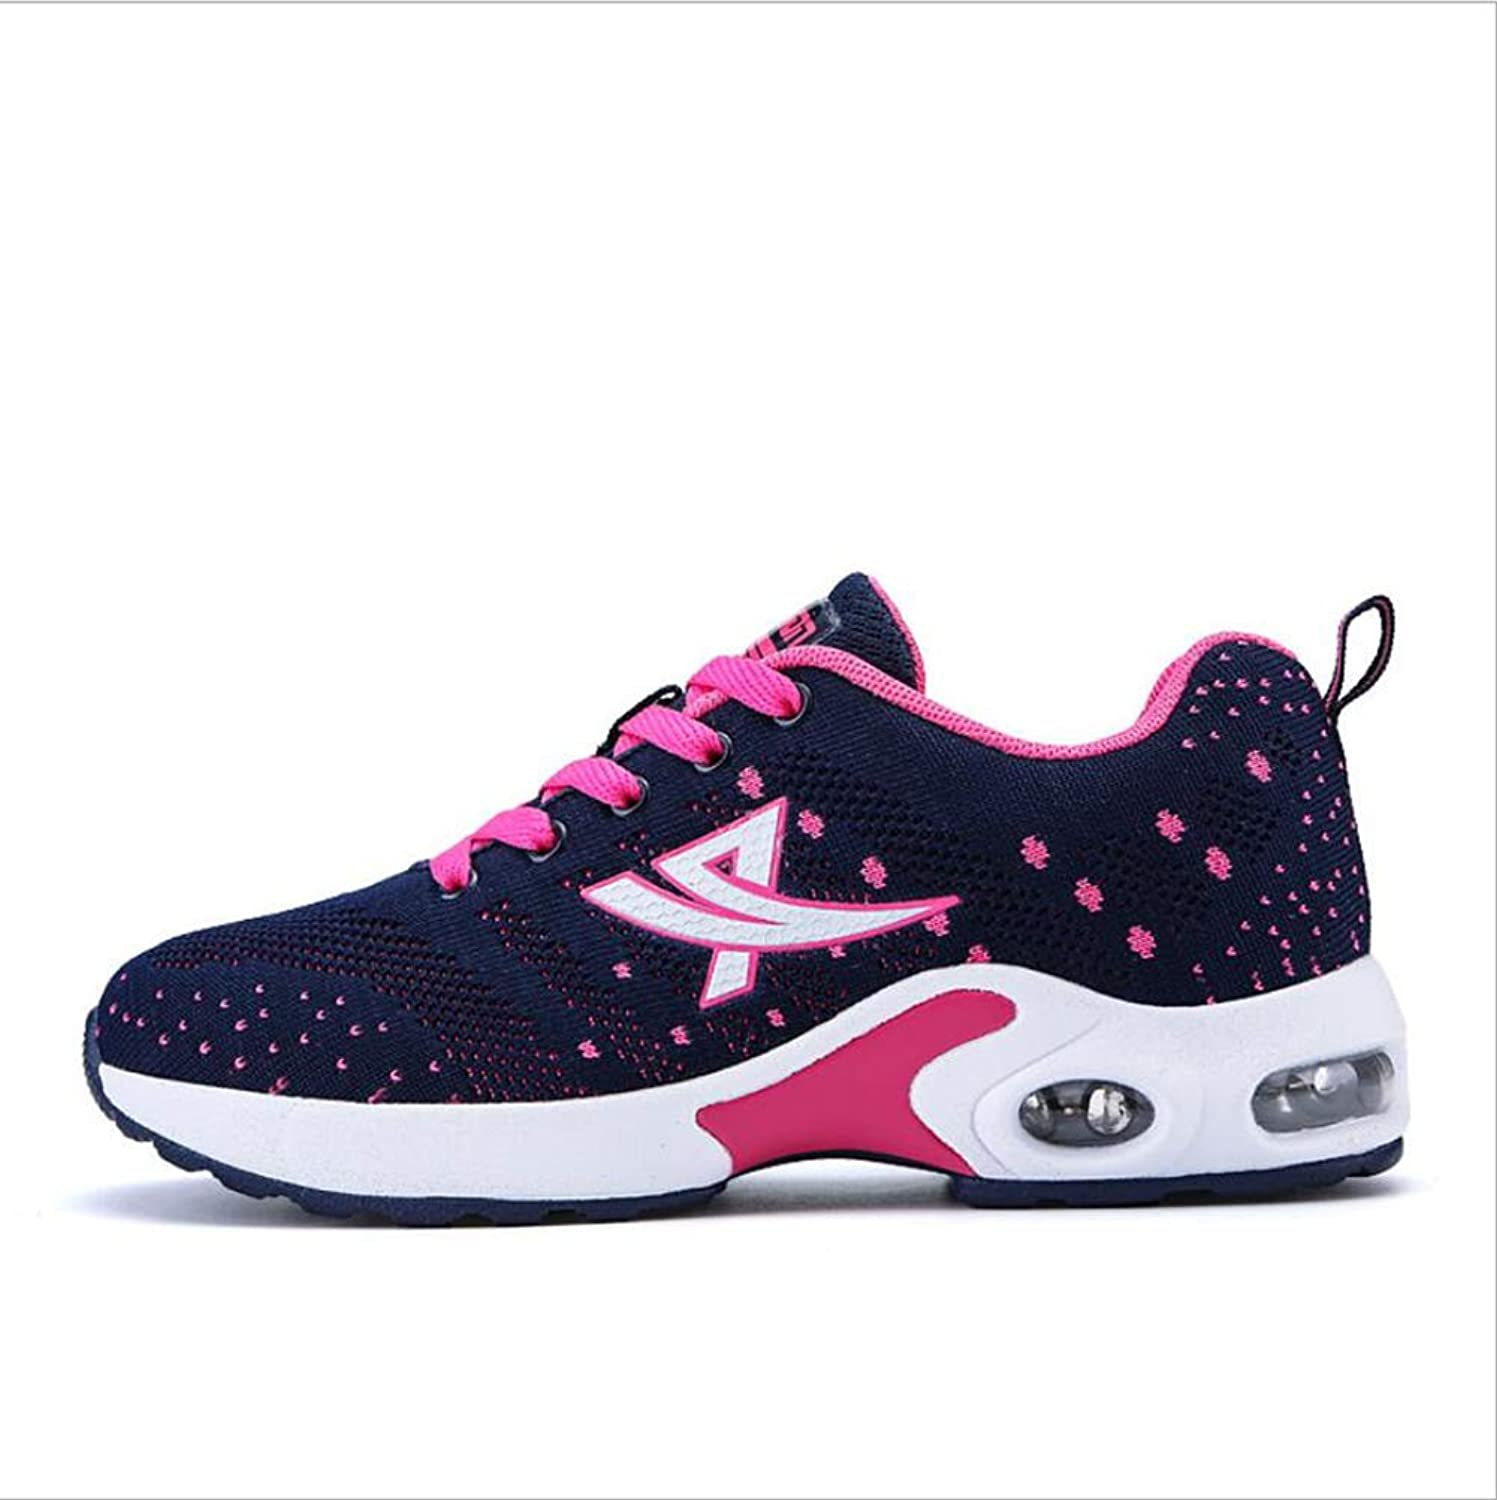 MhC Women's Sneakers,Damping Breathable Athletic Sneakers,Lightweight Comfort Trainers shoes Camping Spring Fall Sneakers for Gym